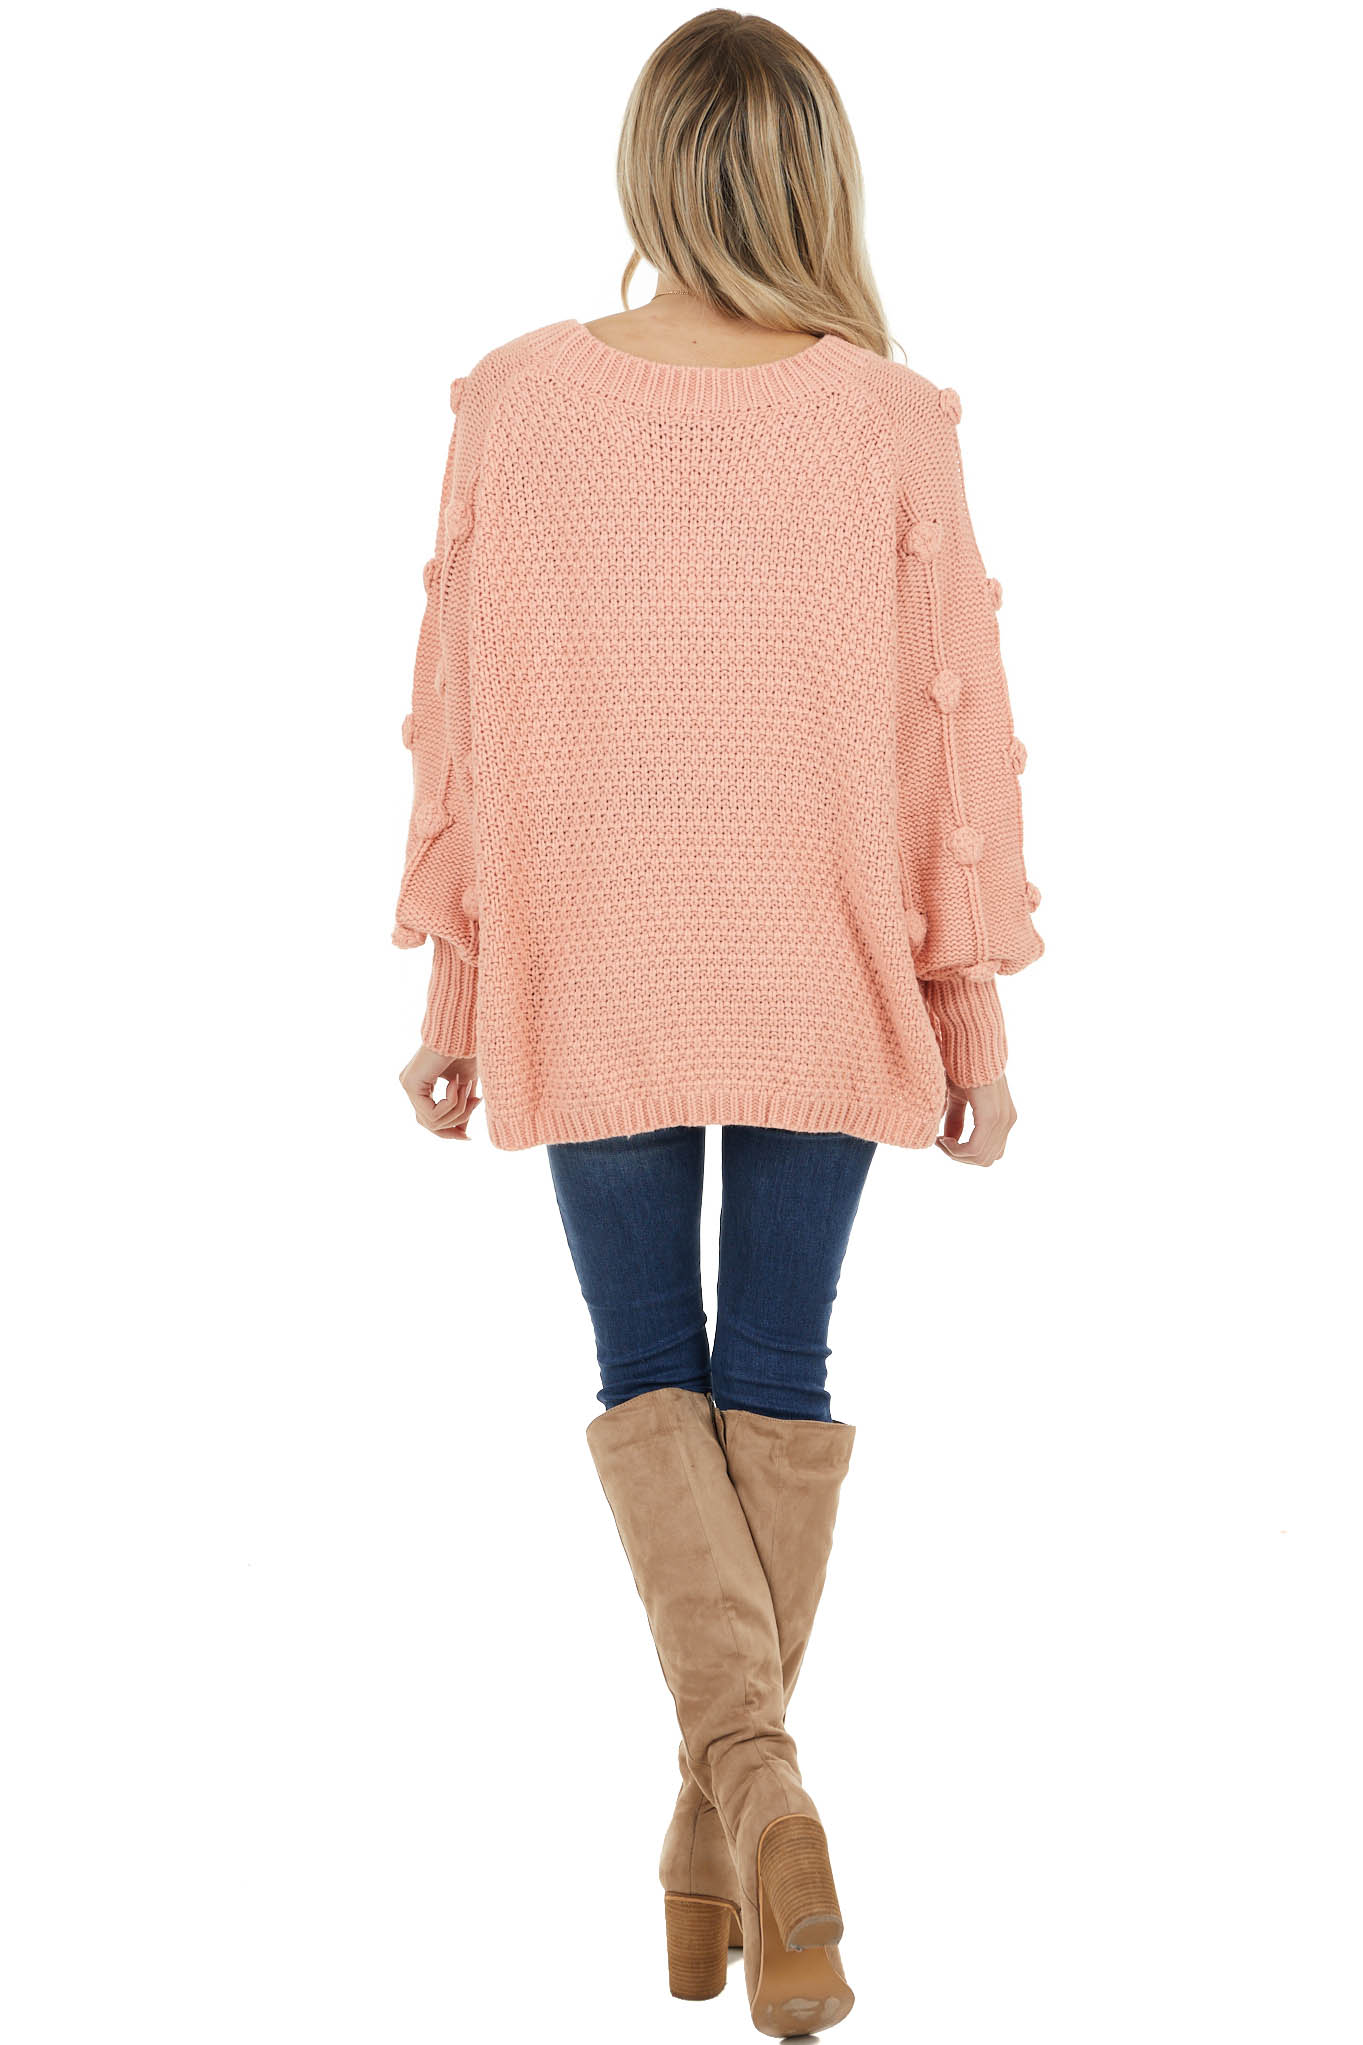 Coral Long Sleeve Knit Sweater with Textured Dots Detail